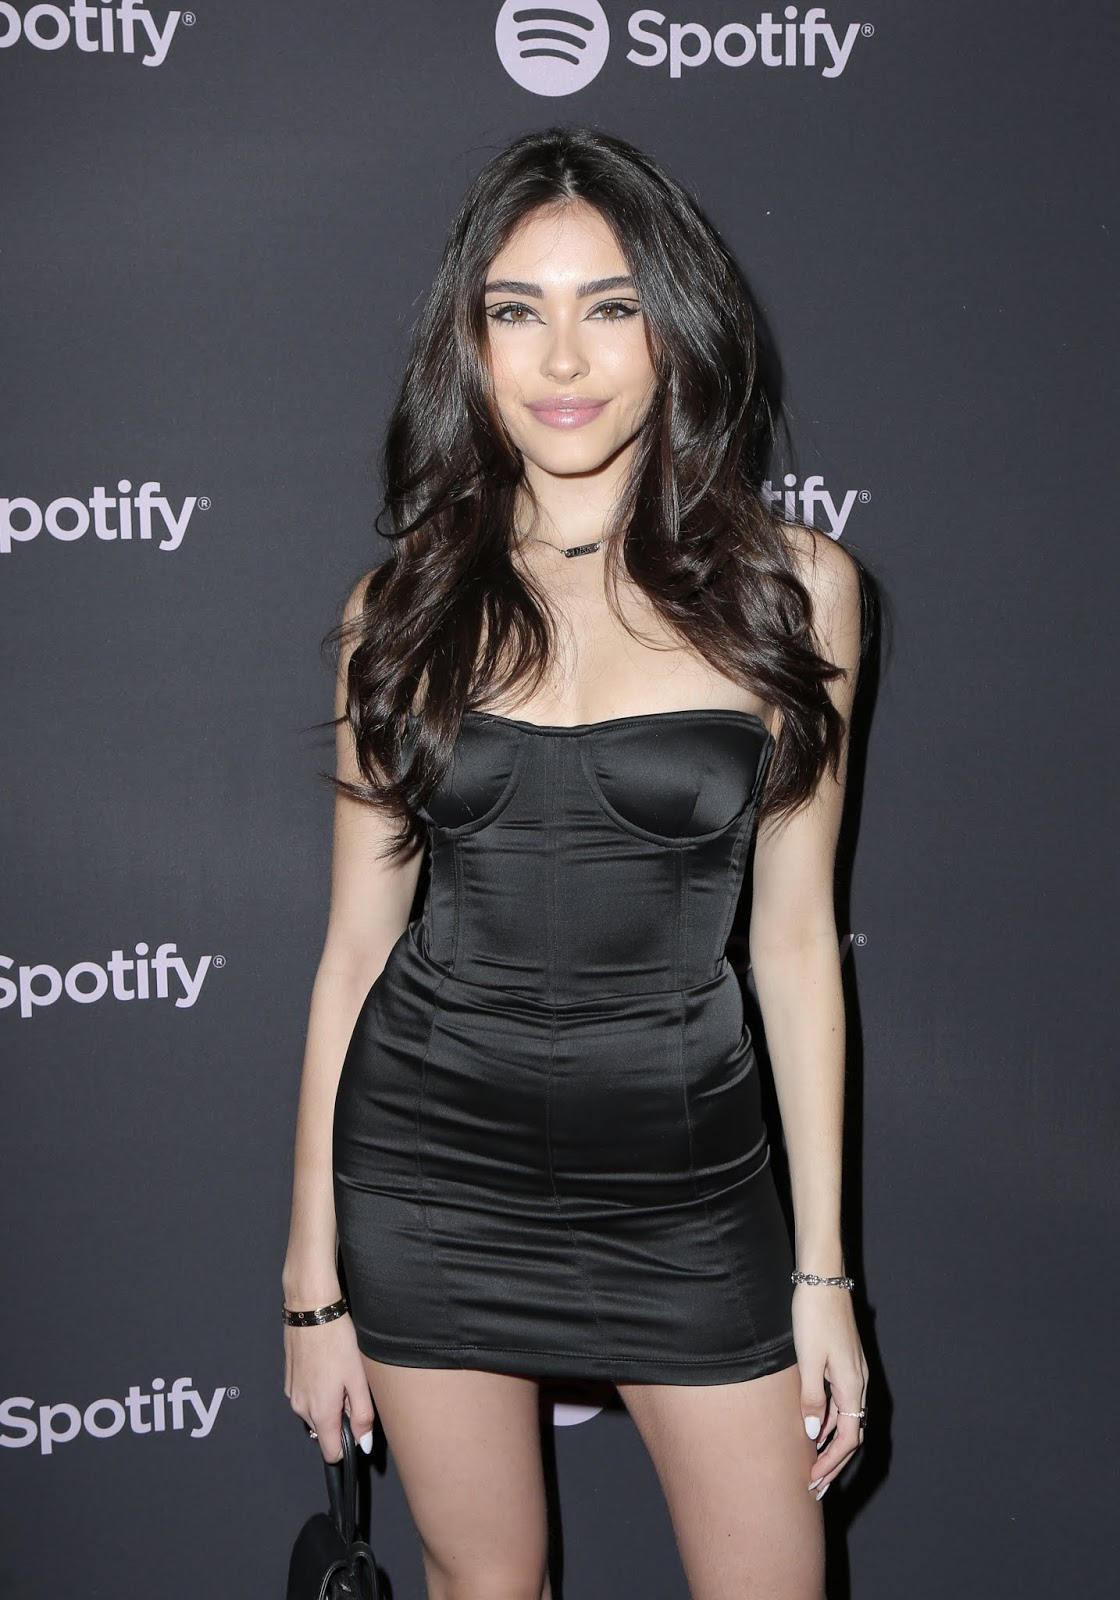 Madison Beer - Spotify Best New Artist 2019 event in LA - 02/07/2019